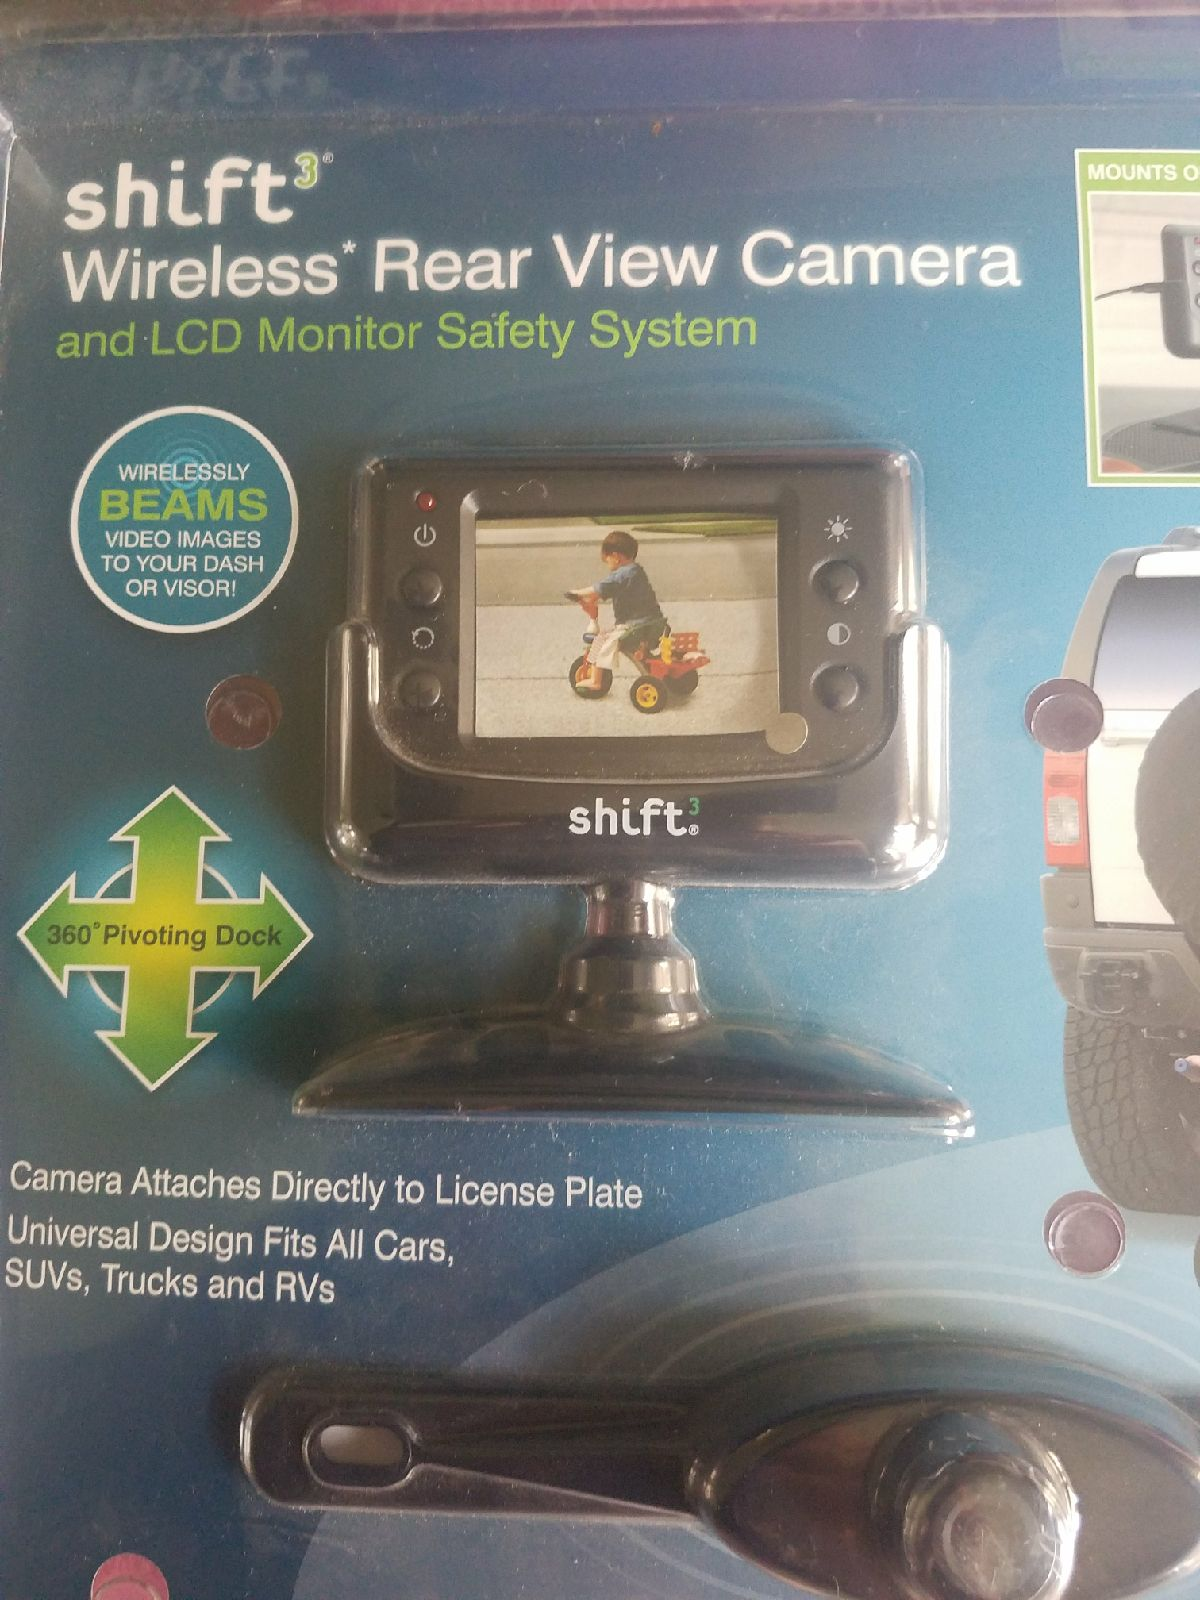 Shift3 Wireless Rear View Camera